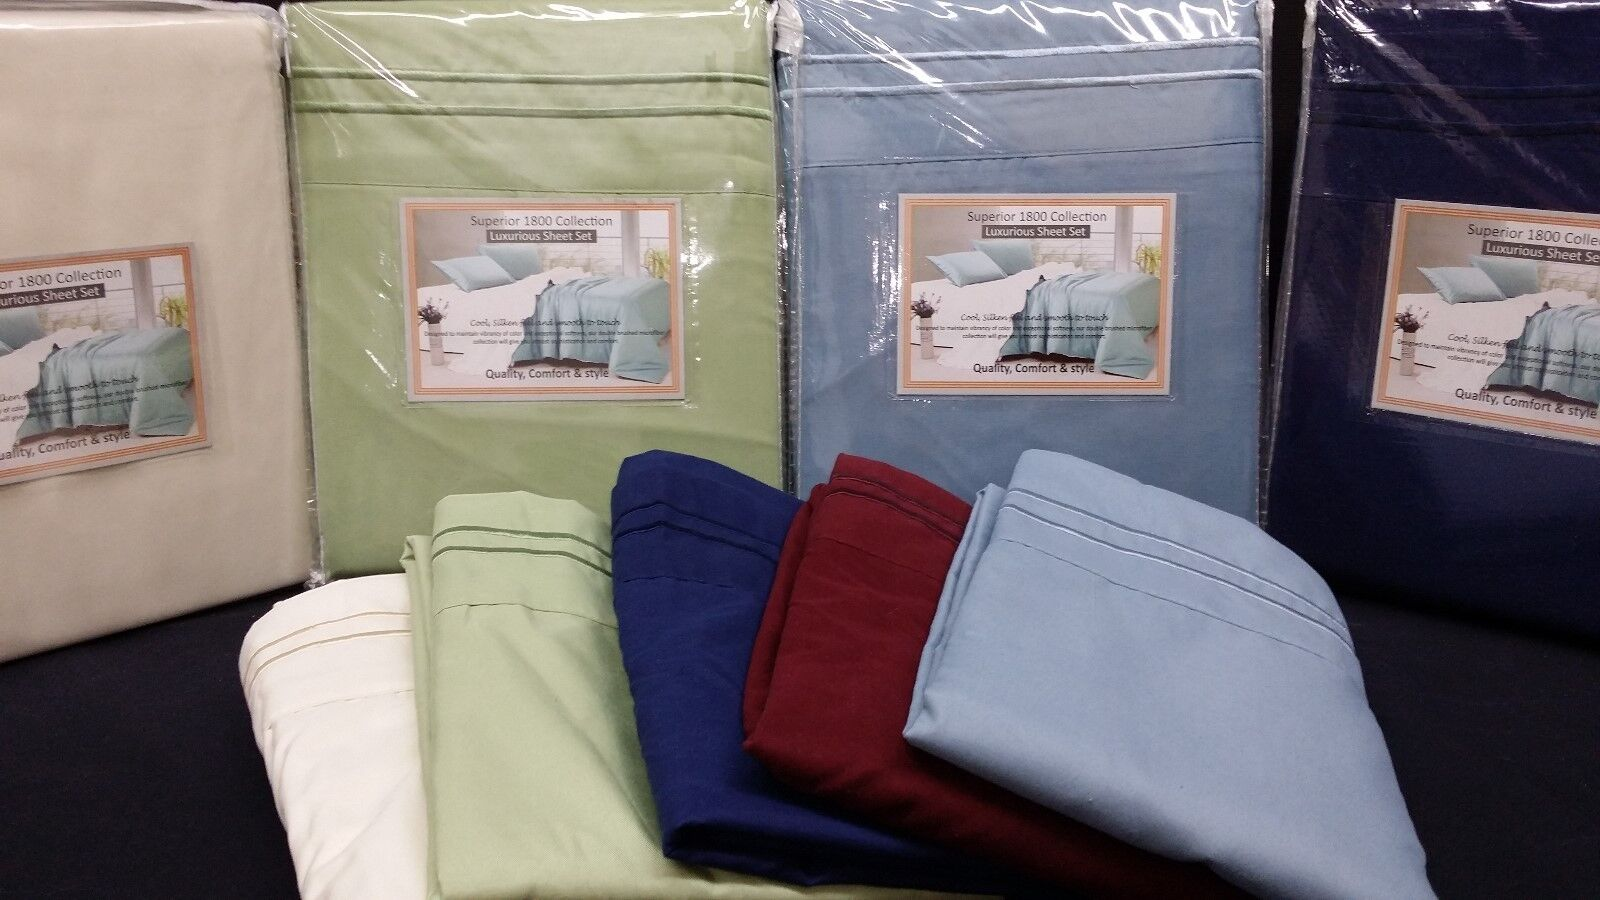 1800 THREAD COUNT 6PC CALIFORNIA KING WATERBED SHEET SET W/